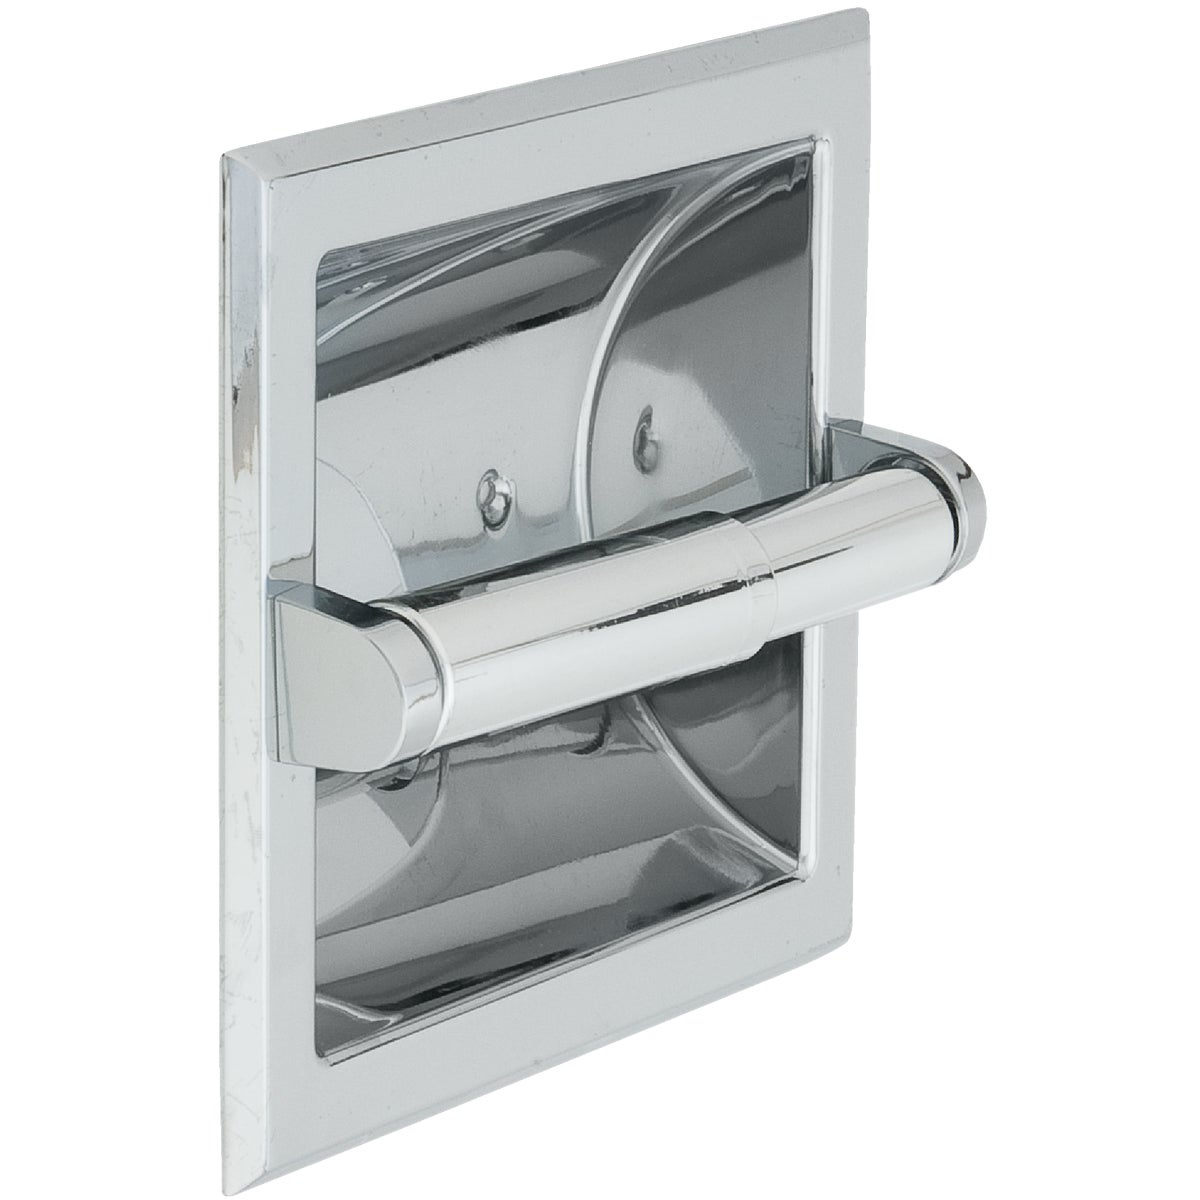 CHRME RECESSED TP HOLDER - 409365 by Do it Best